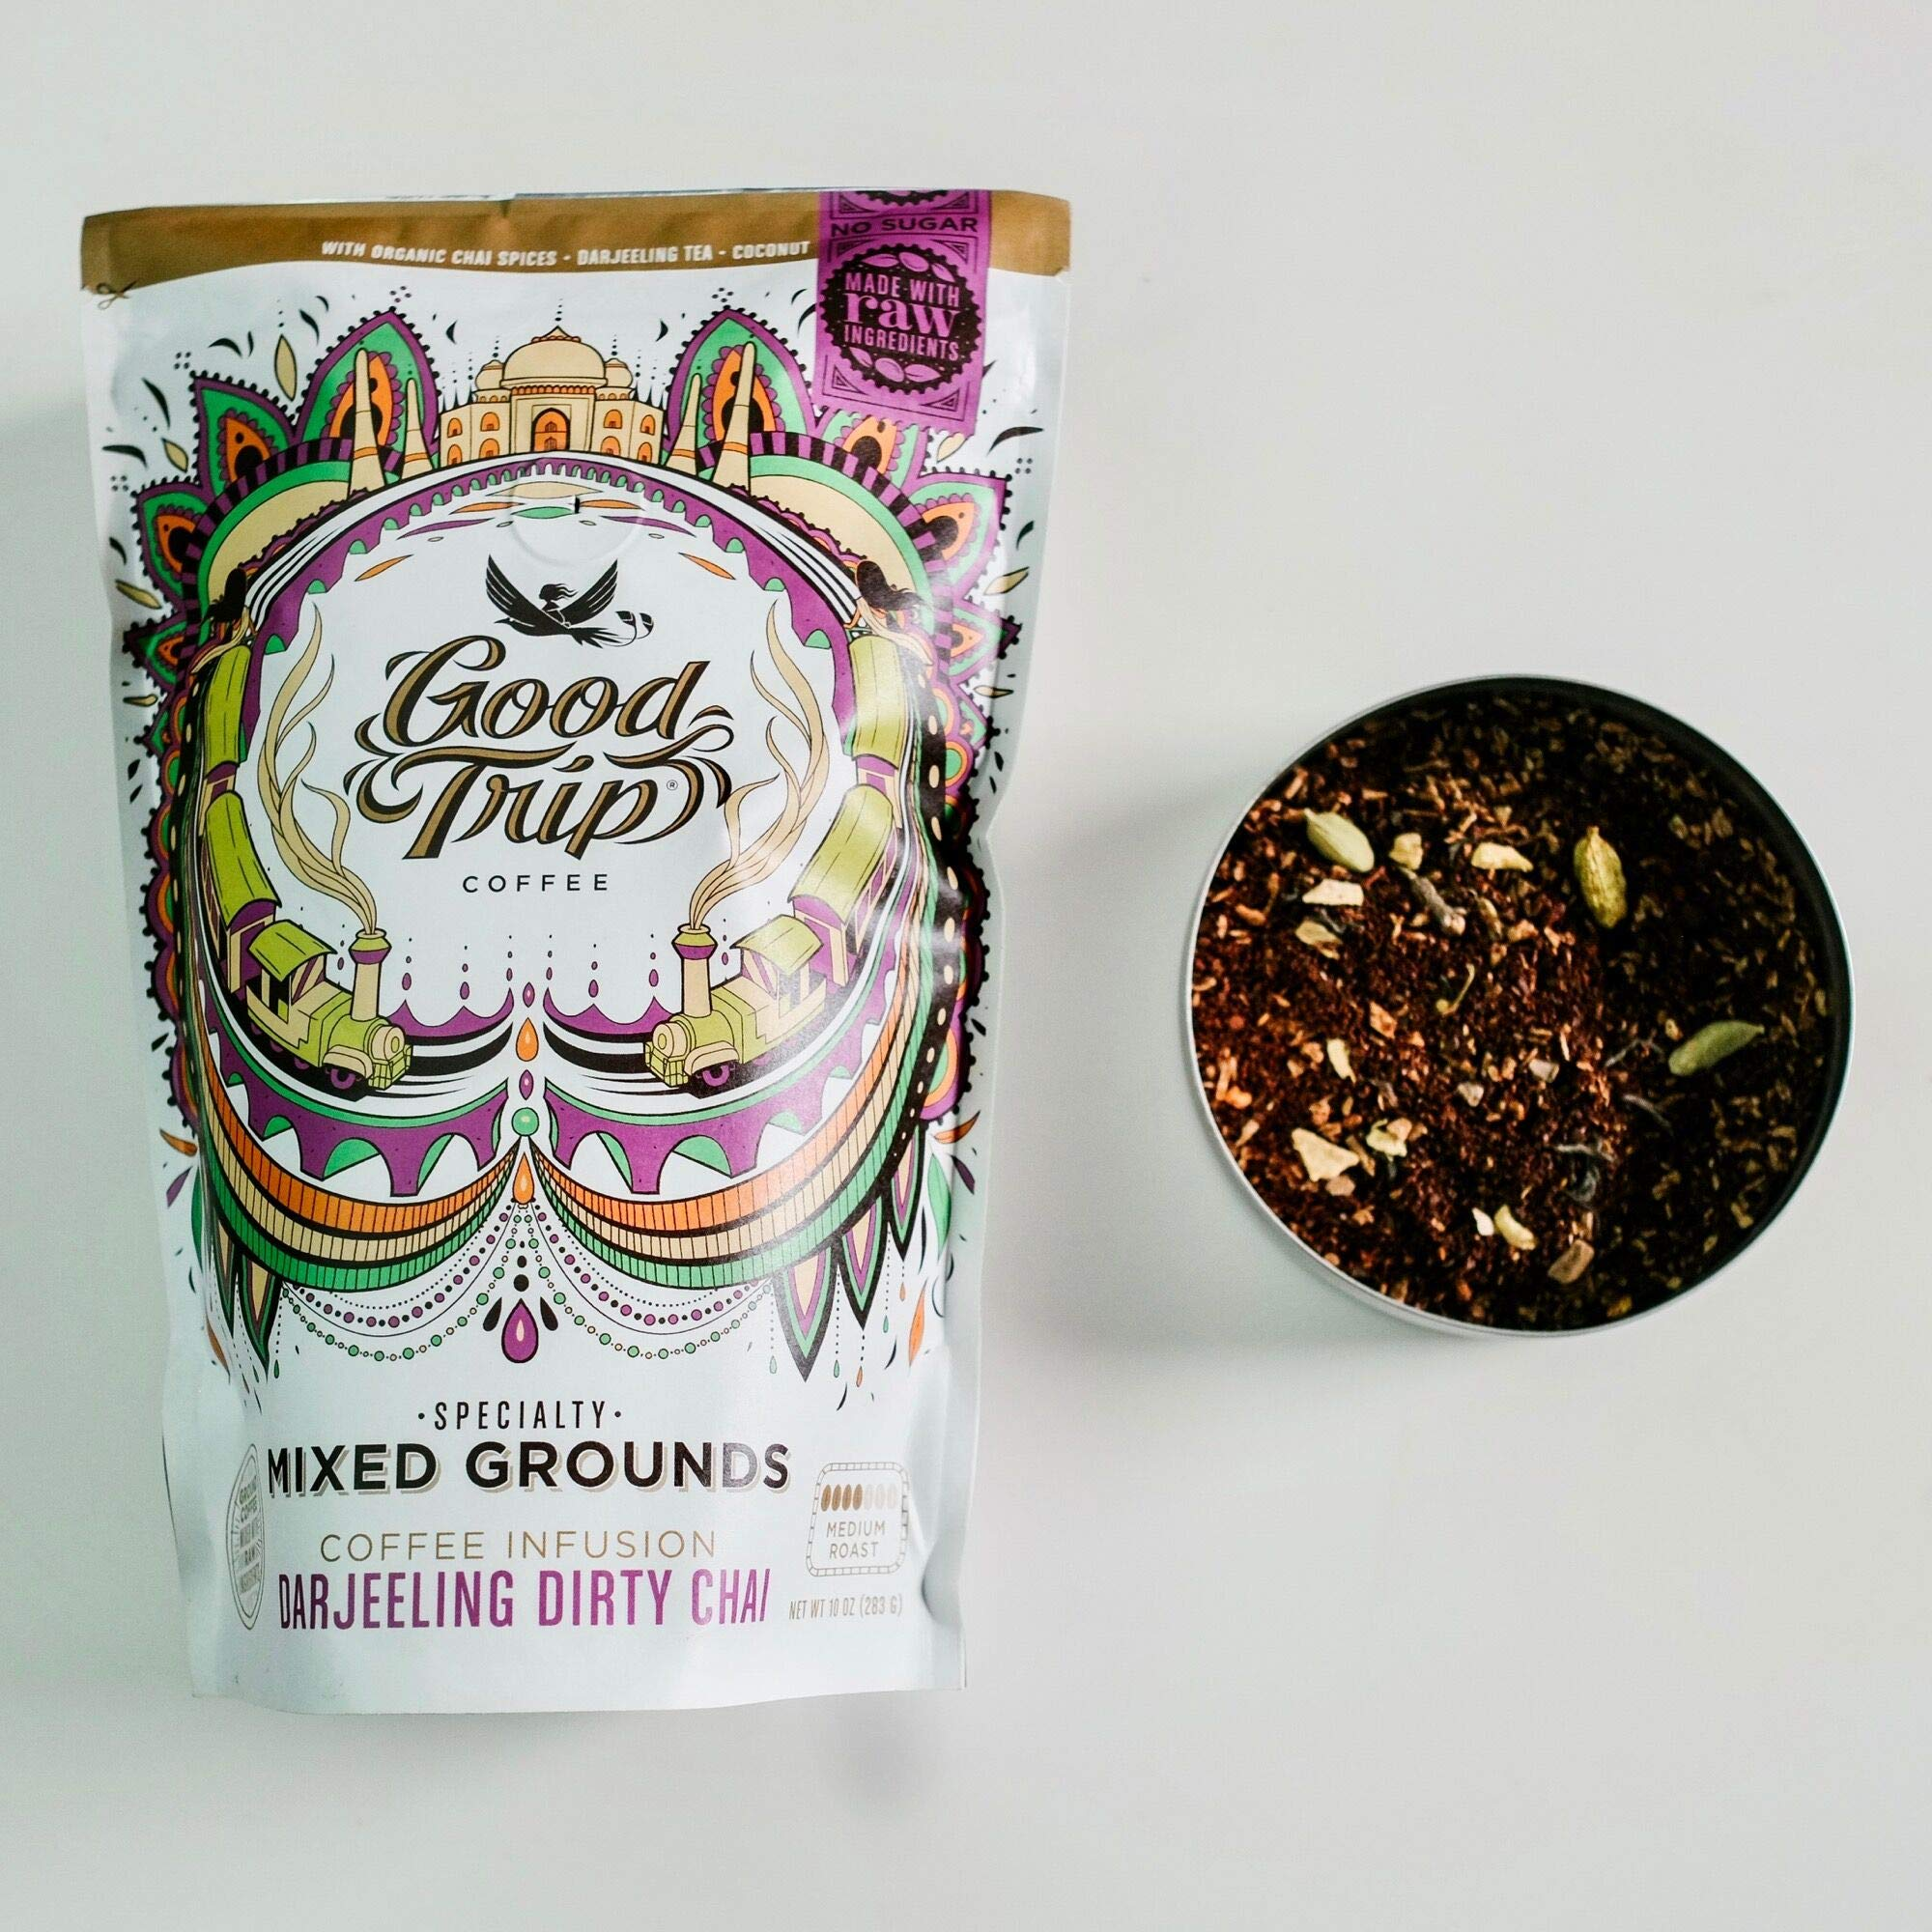 Good Trip: Darjeeling Dirty Chai ~ As Seen in Anthropologie   Organic Coffee Infusion Mixed w/ Tea, Spices & Coconut   Vegan, GF, Keto, Non-GMO   (Coarse Ground for Cold Brew or French Press), 10 oz